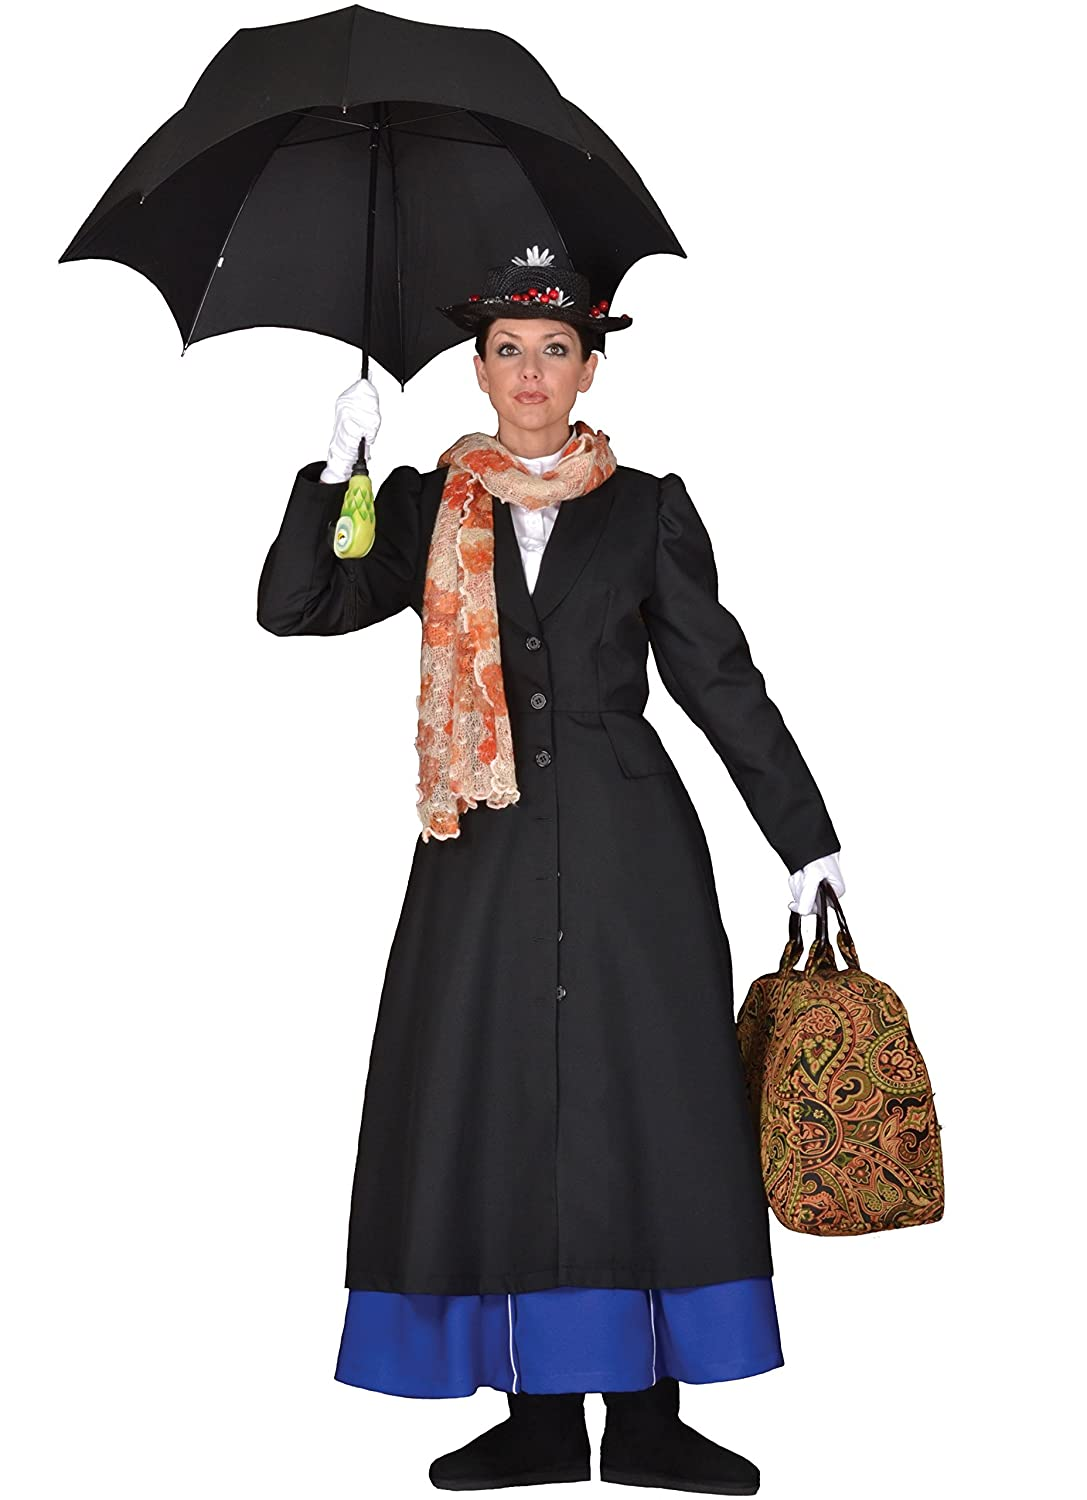 Amazon.com: Deluxe Mary Poppins/Steampunk Alfombra Bag ...